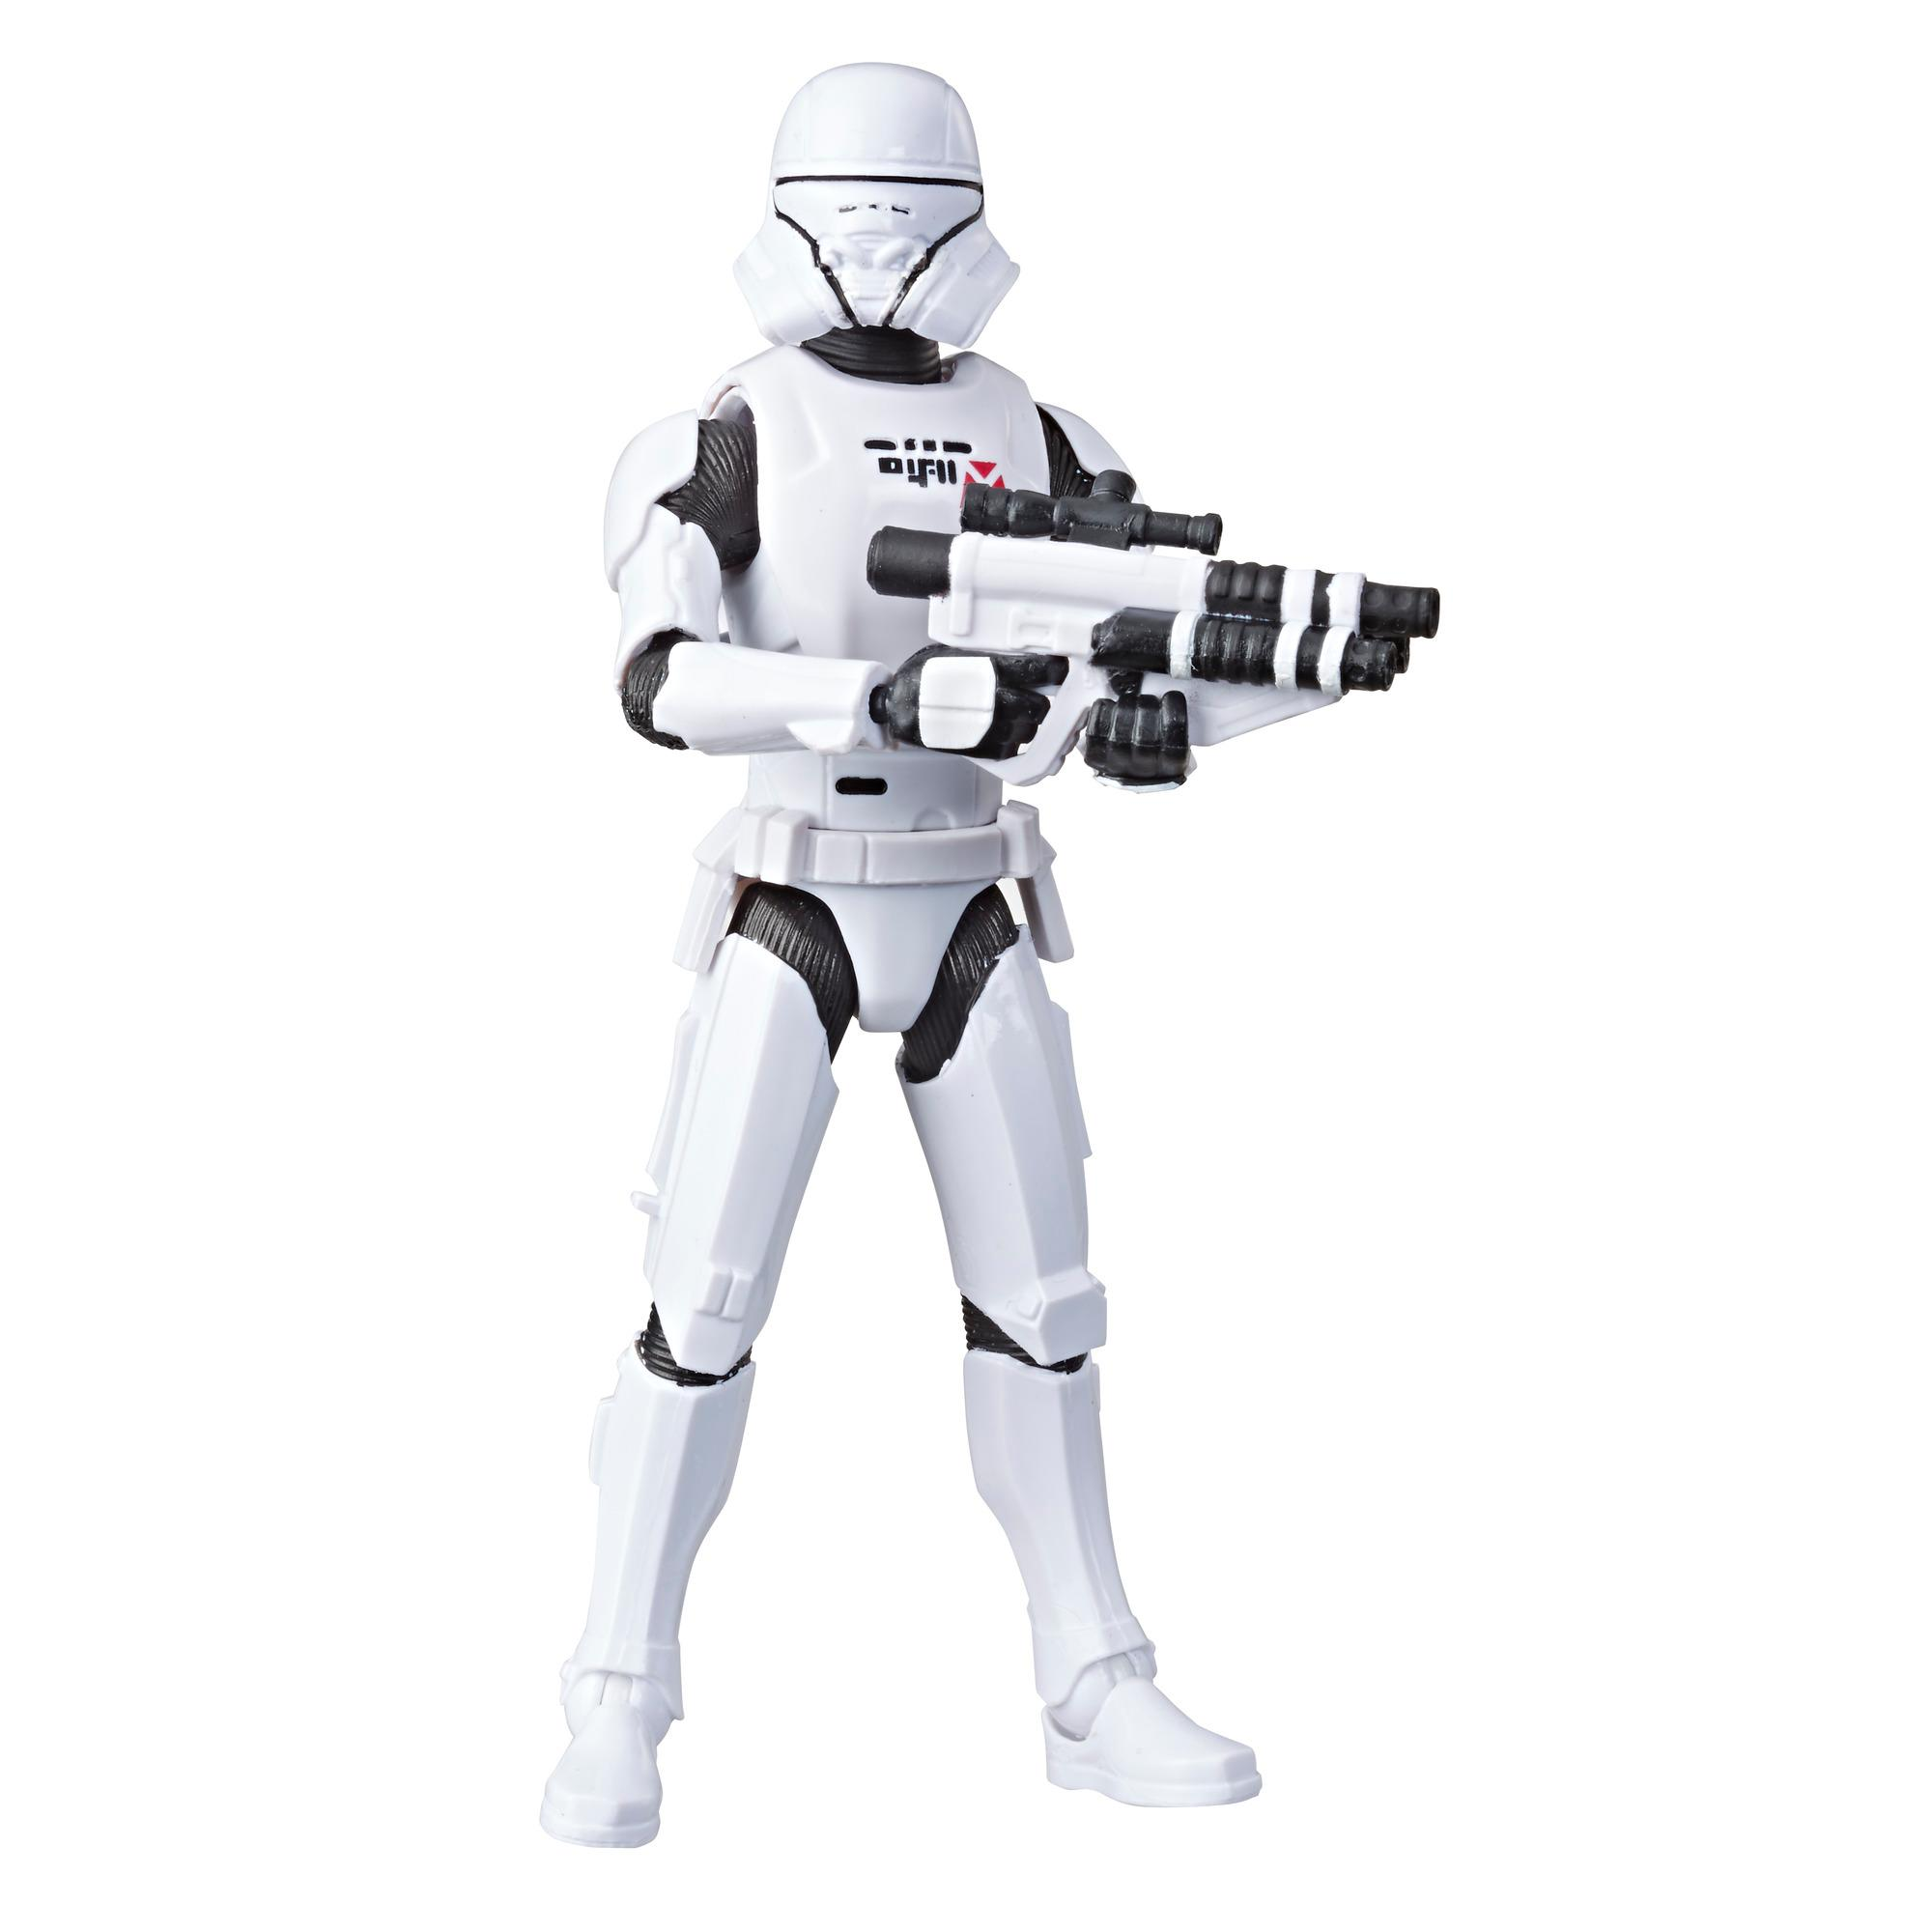 STAR WARS FIGURAS PERSONAJES EPISODIO 9 JET TROOPER